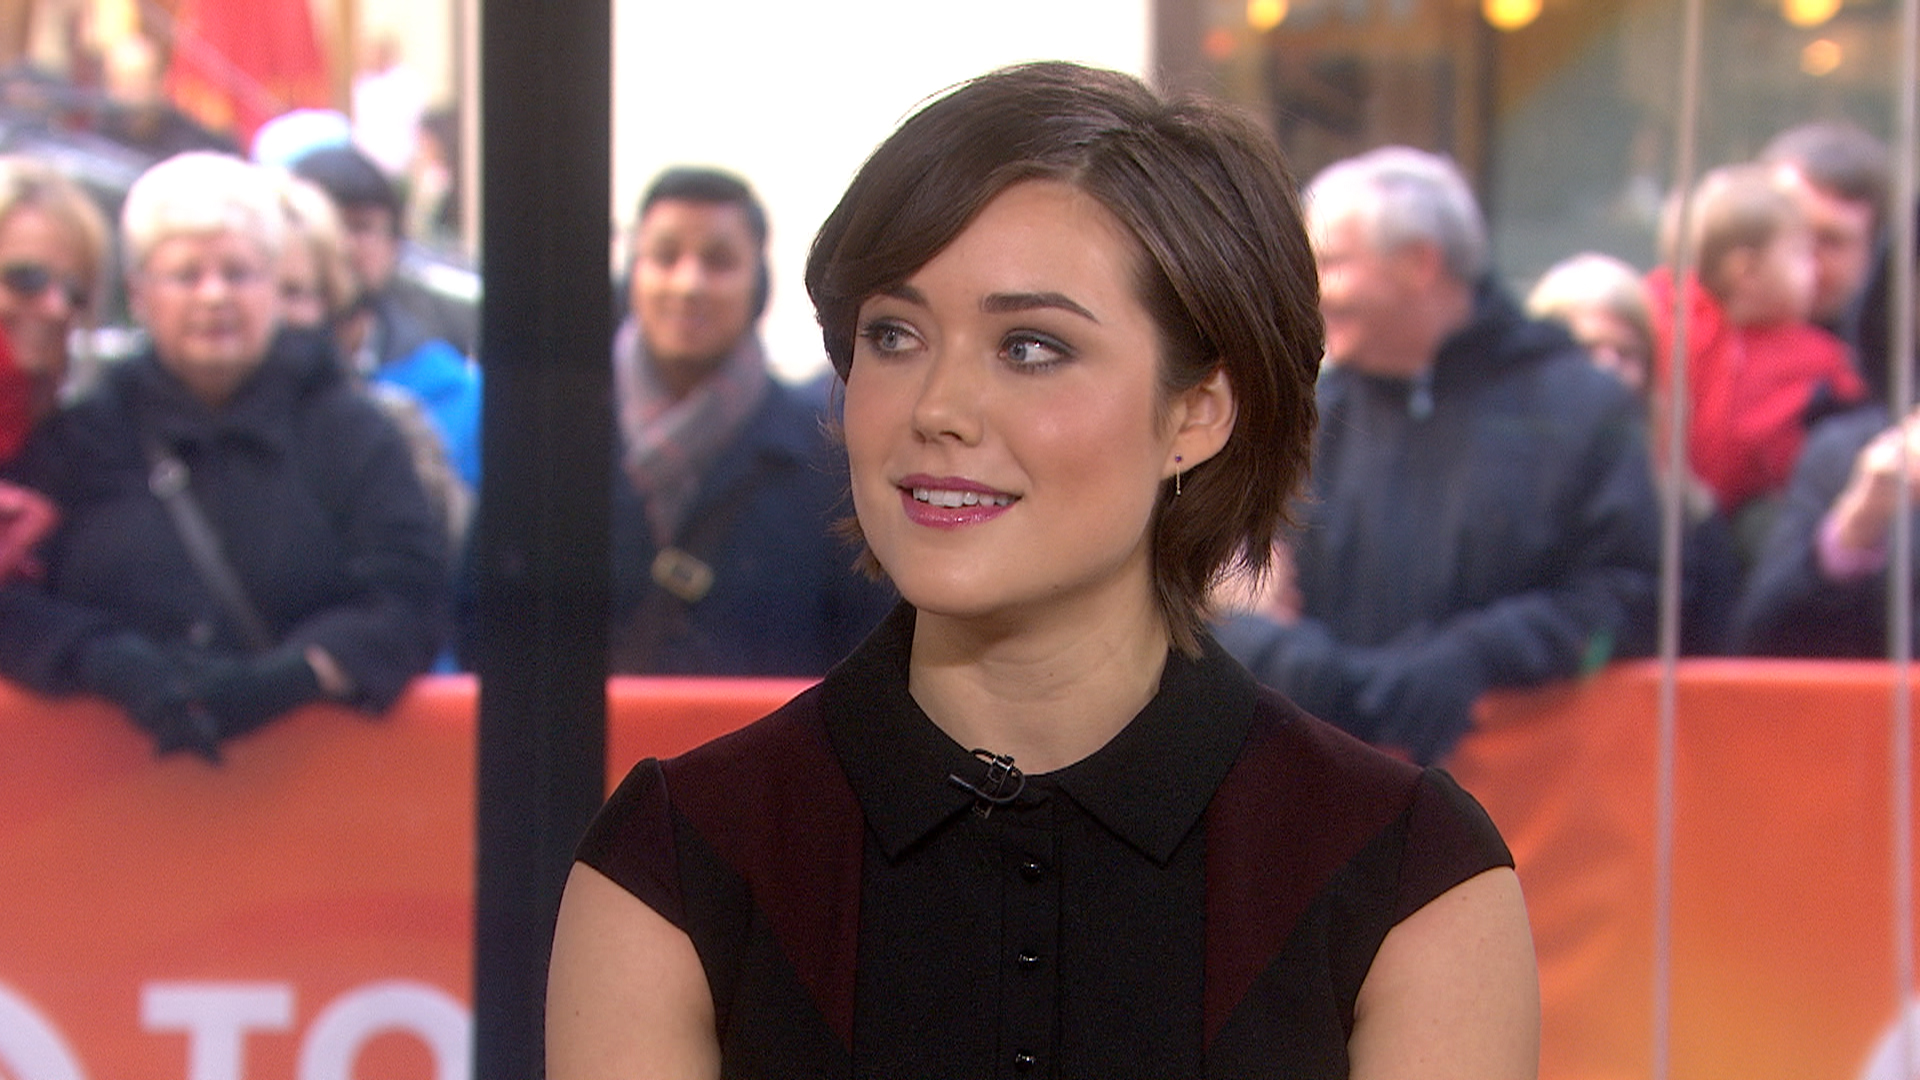 'Blacklist' star Megan Boone deals with hairy situations ...